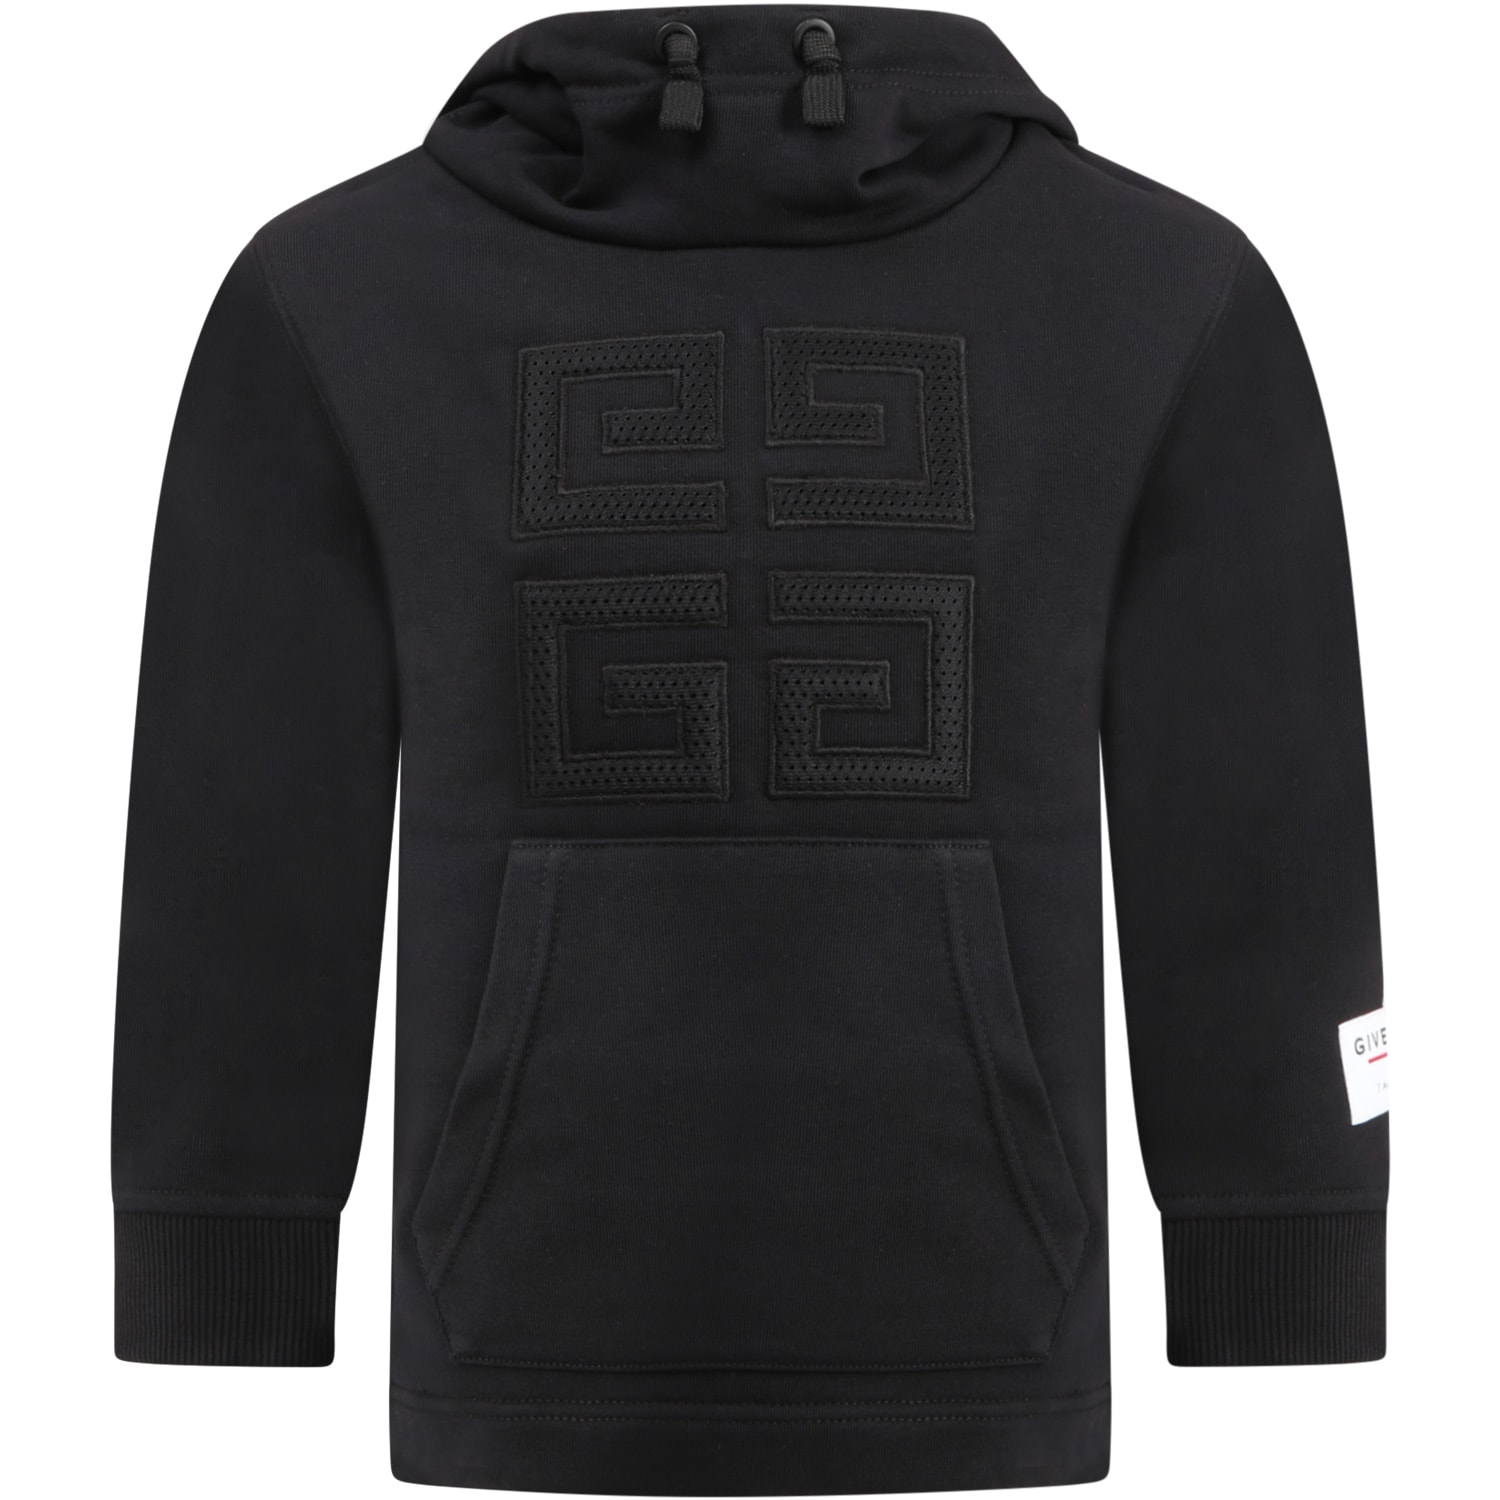 Givenchy BLACK SWEATSHIRT FOR KIDS WITH 4G